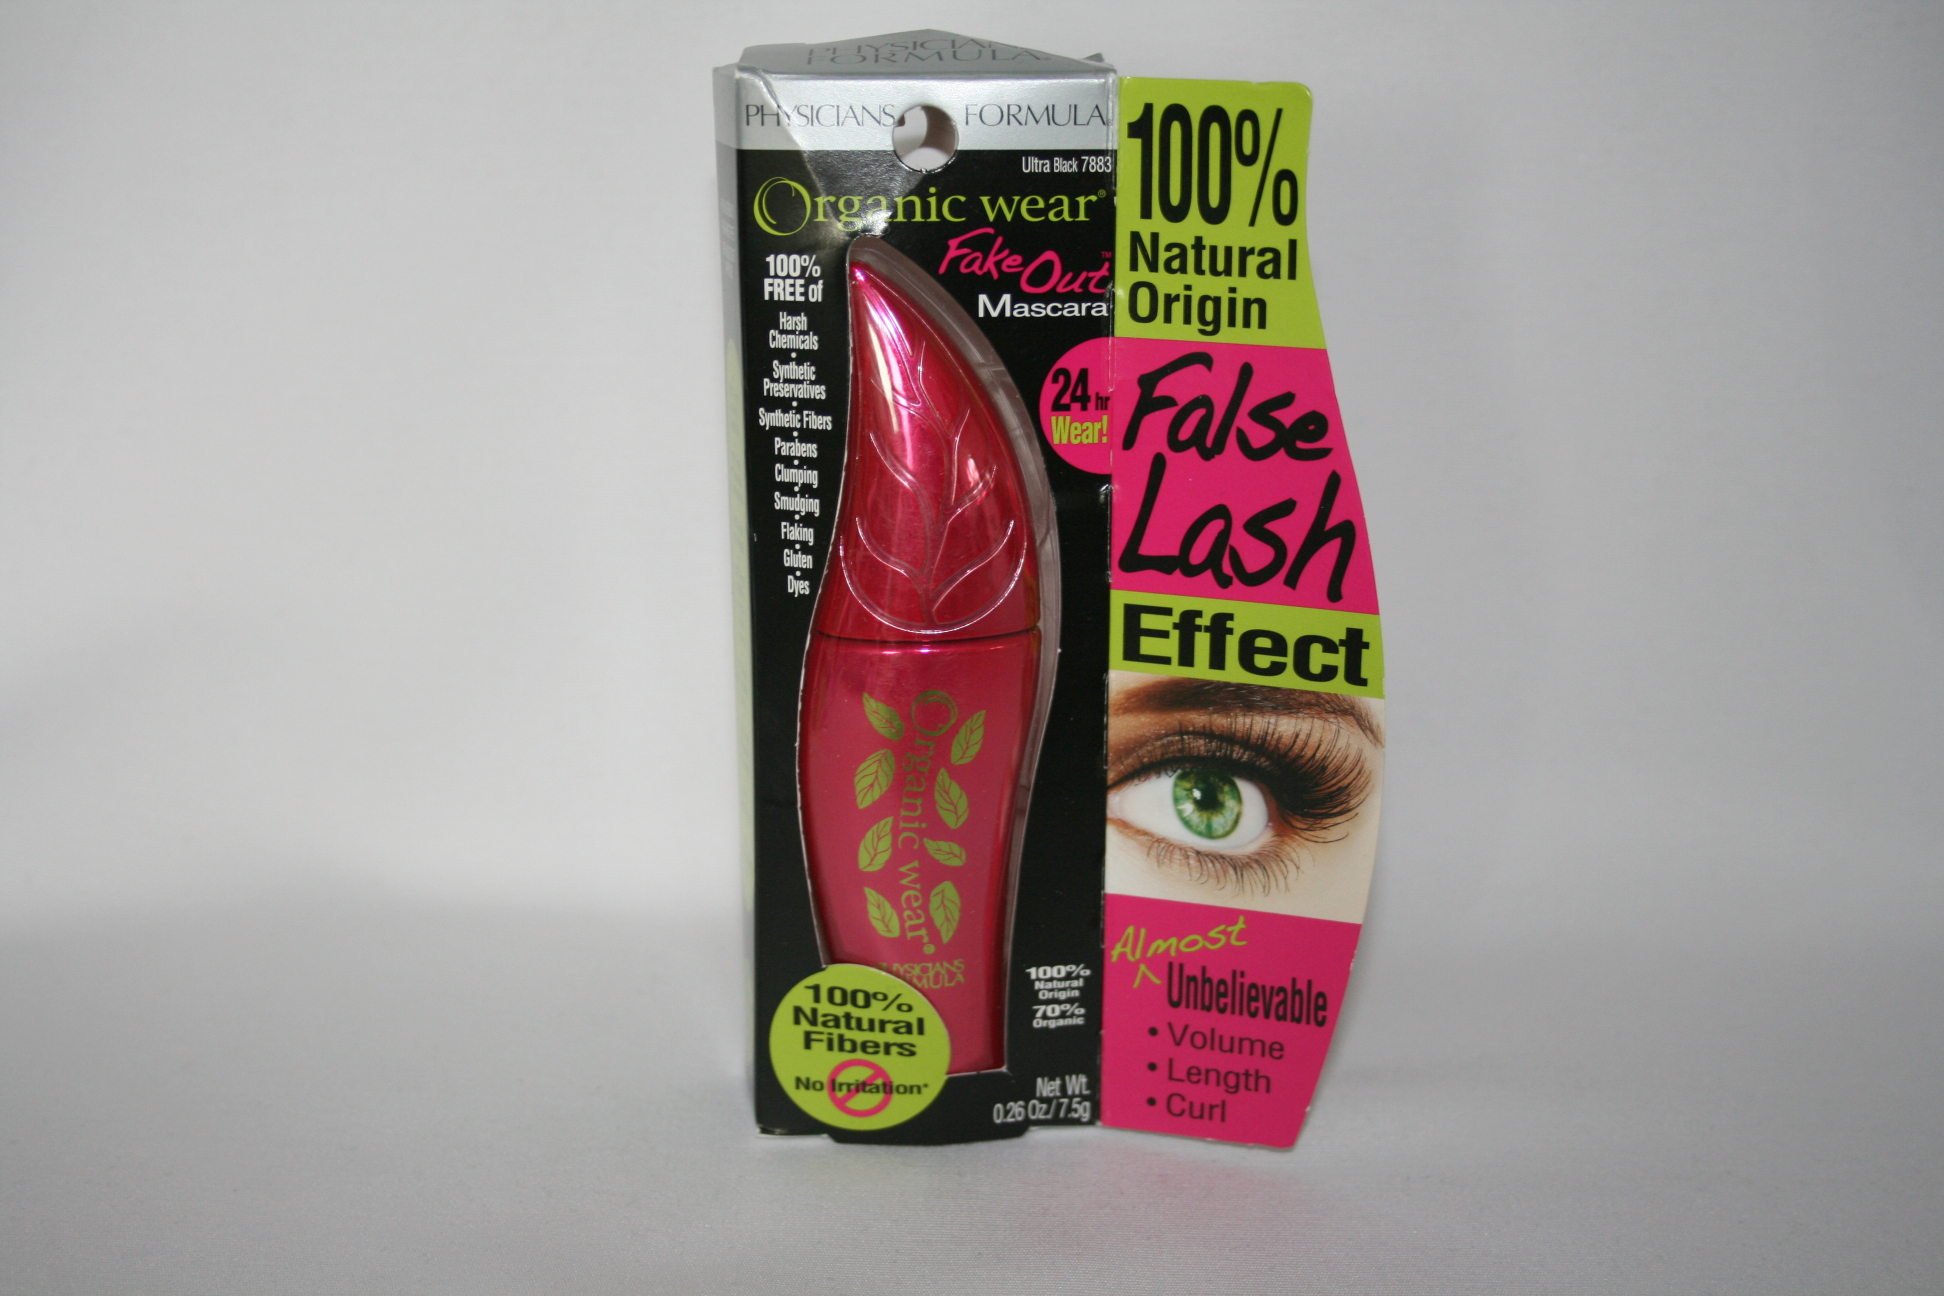 Mascara Physicans Formula